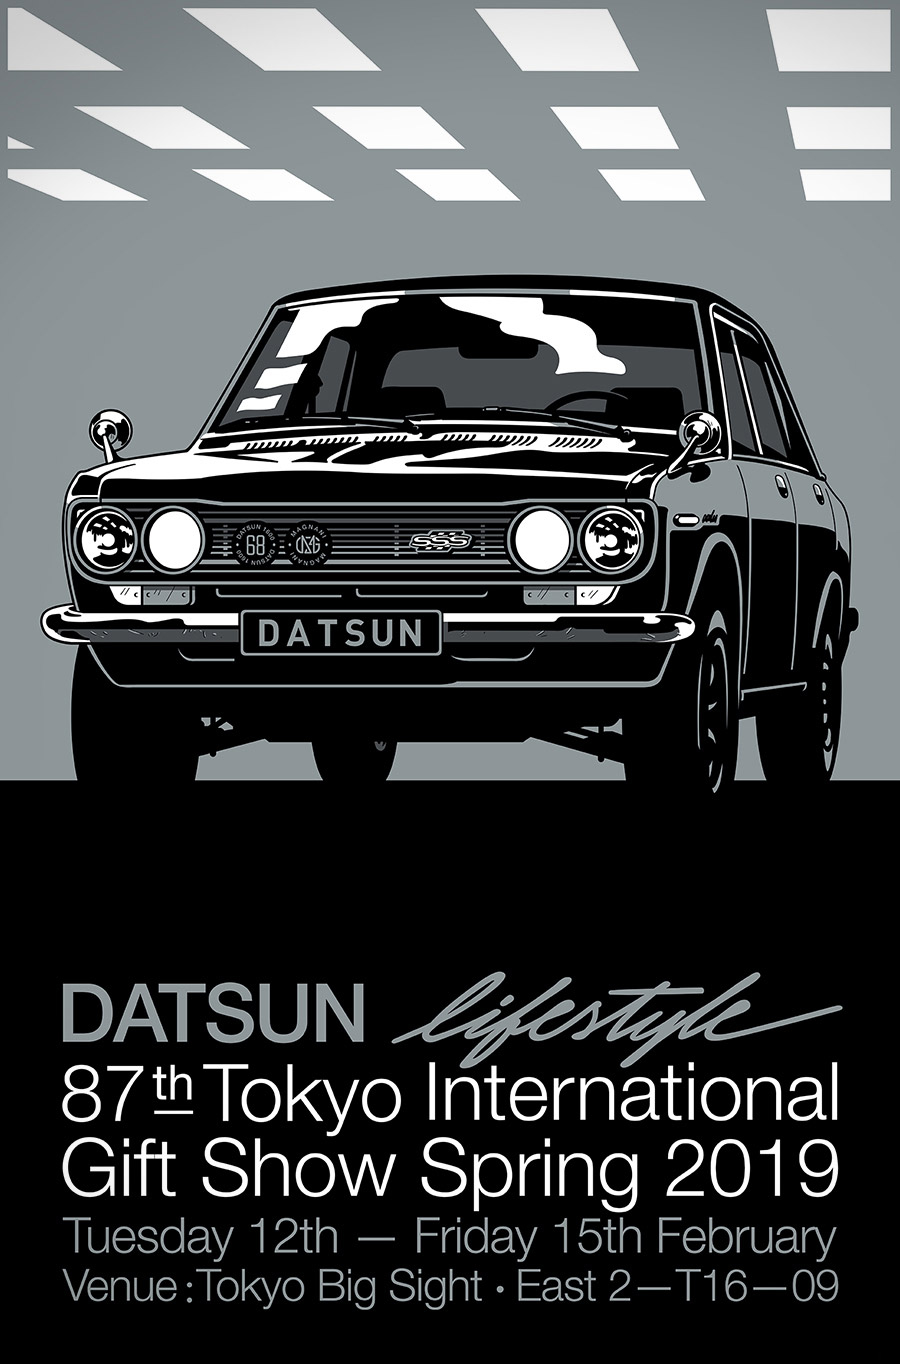 Gianmarco Magnani X Datsun Variant Poster